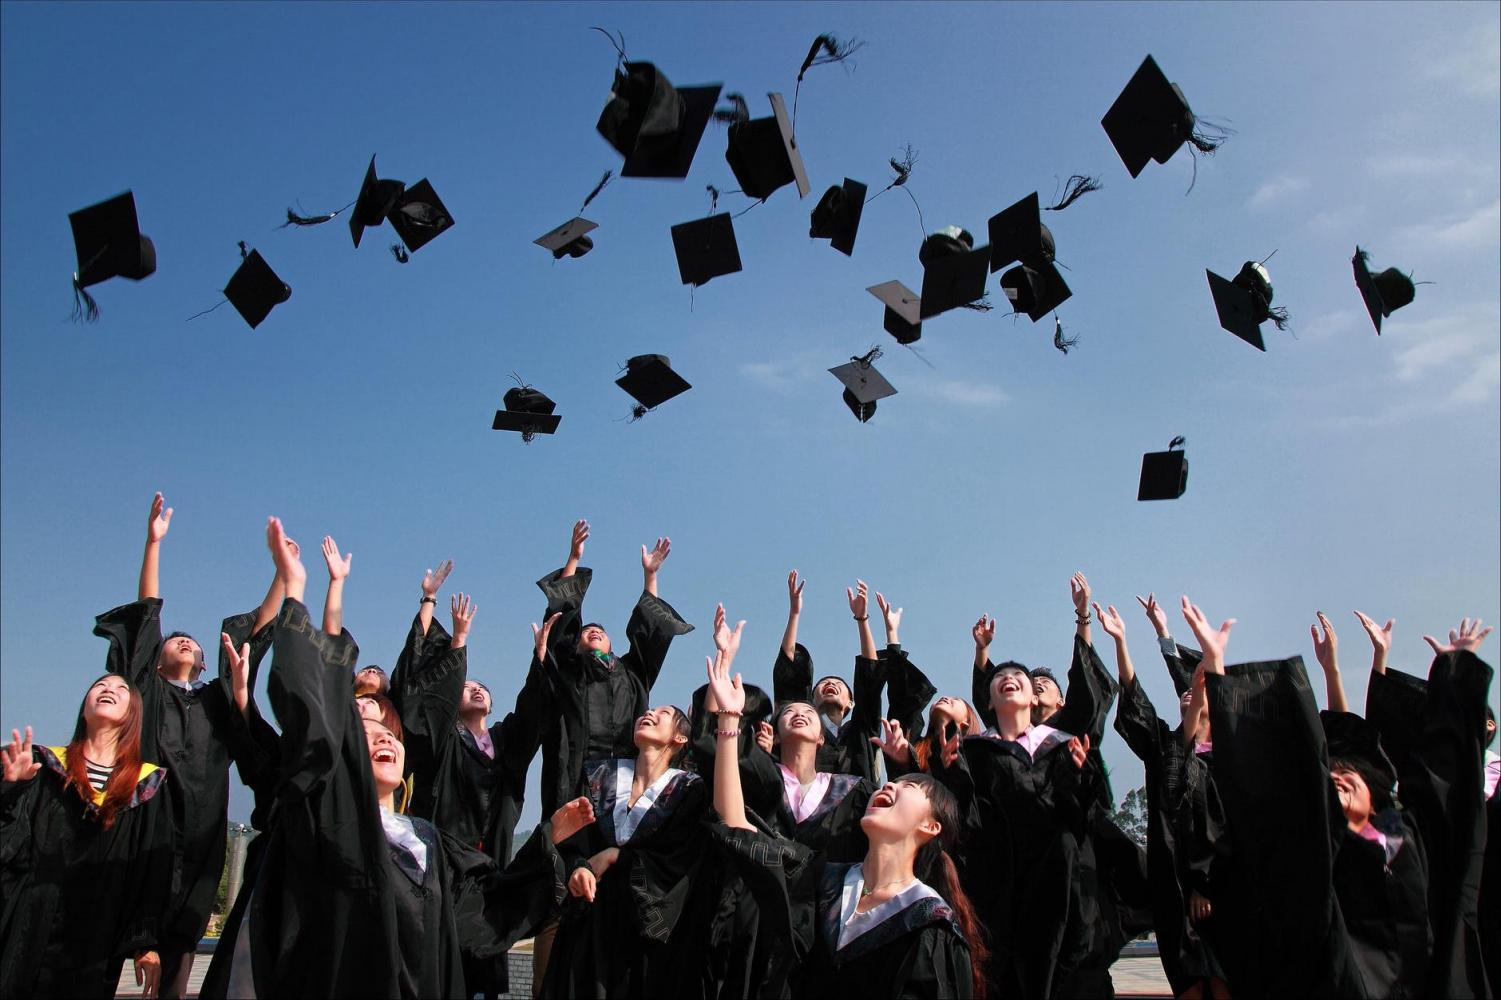 Tuition costs may be high but the education and experience of college is worthwhile.